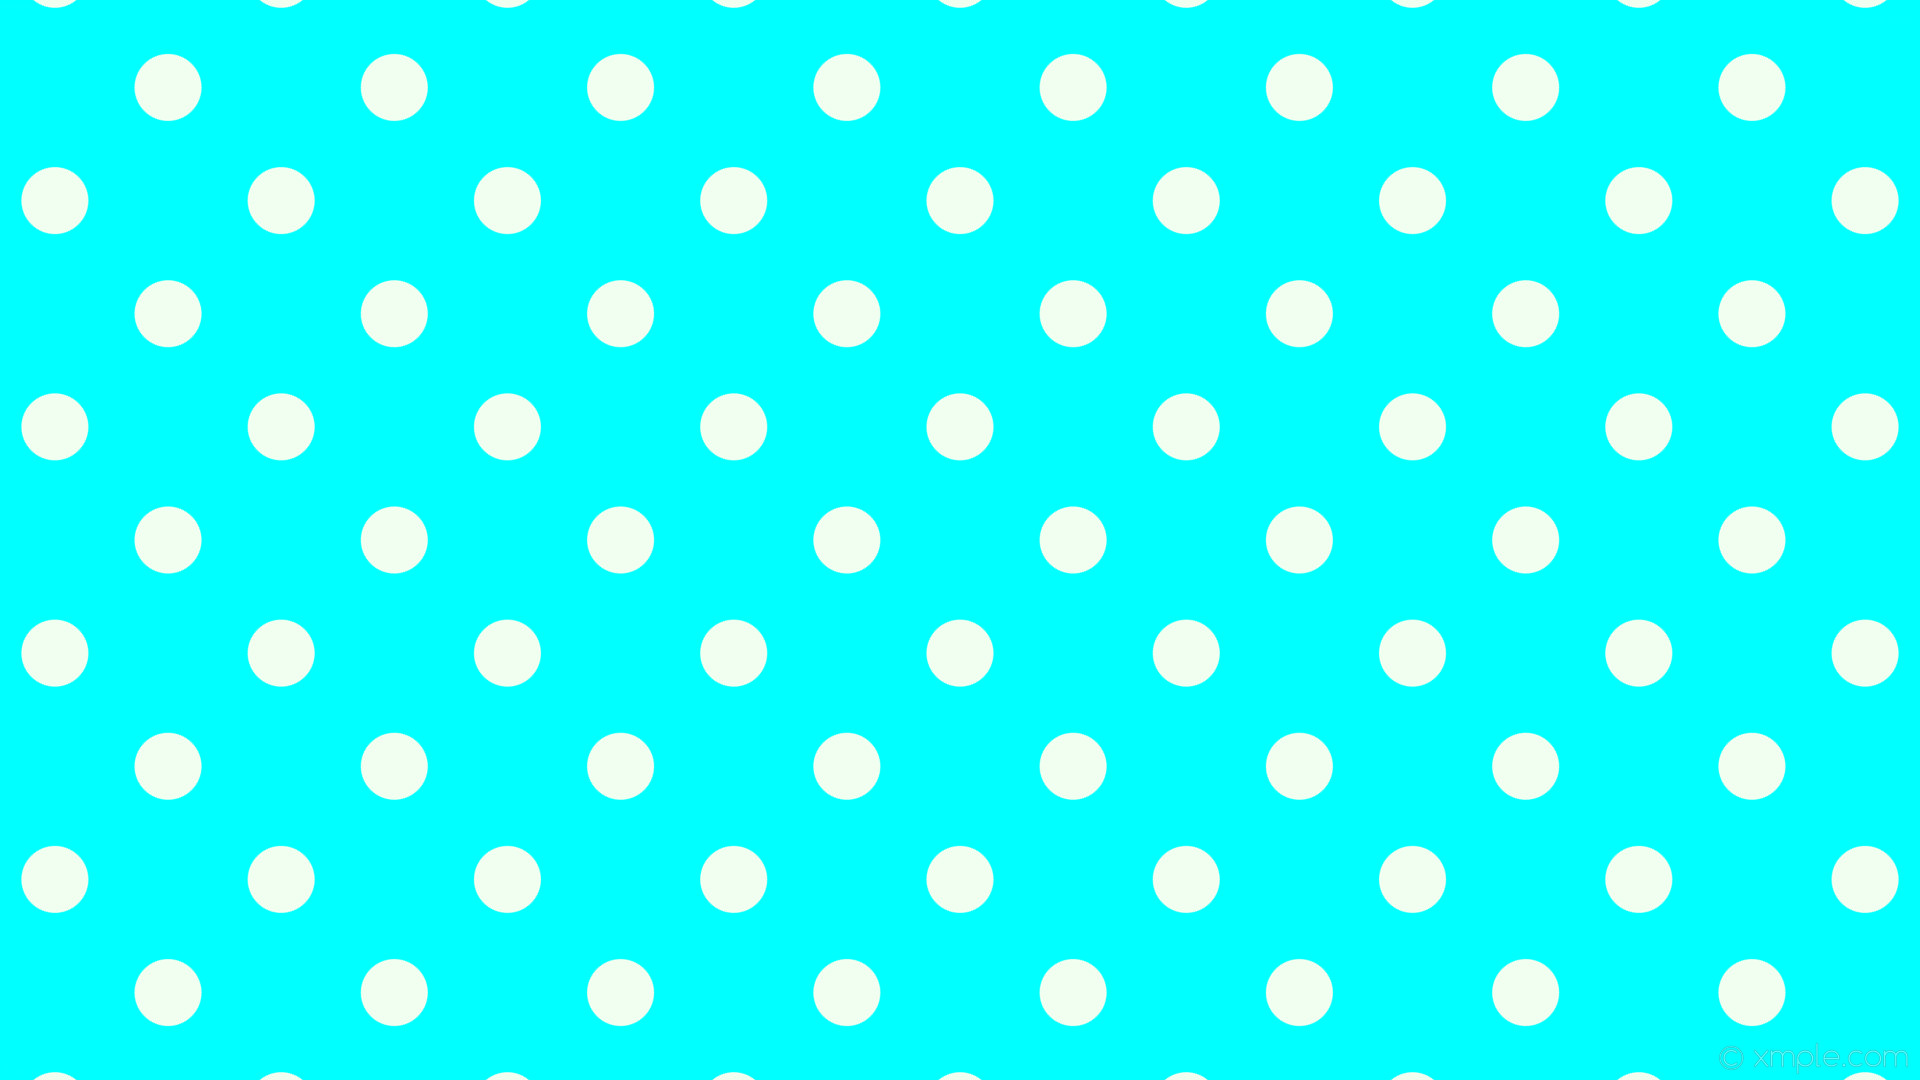 wallpaper white spots blue polka dots aqua cyan honeydew #00ffff #f0fff0  135° 67px